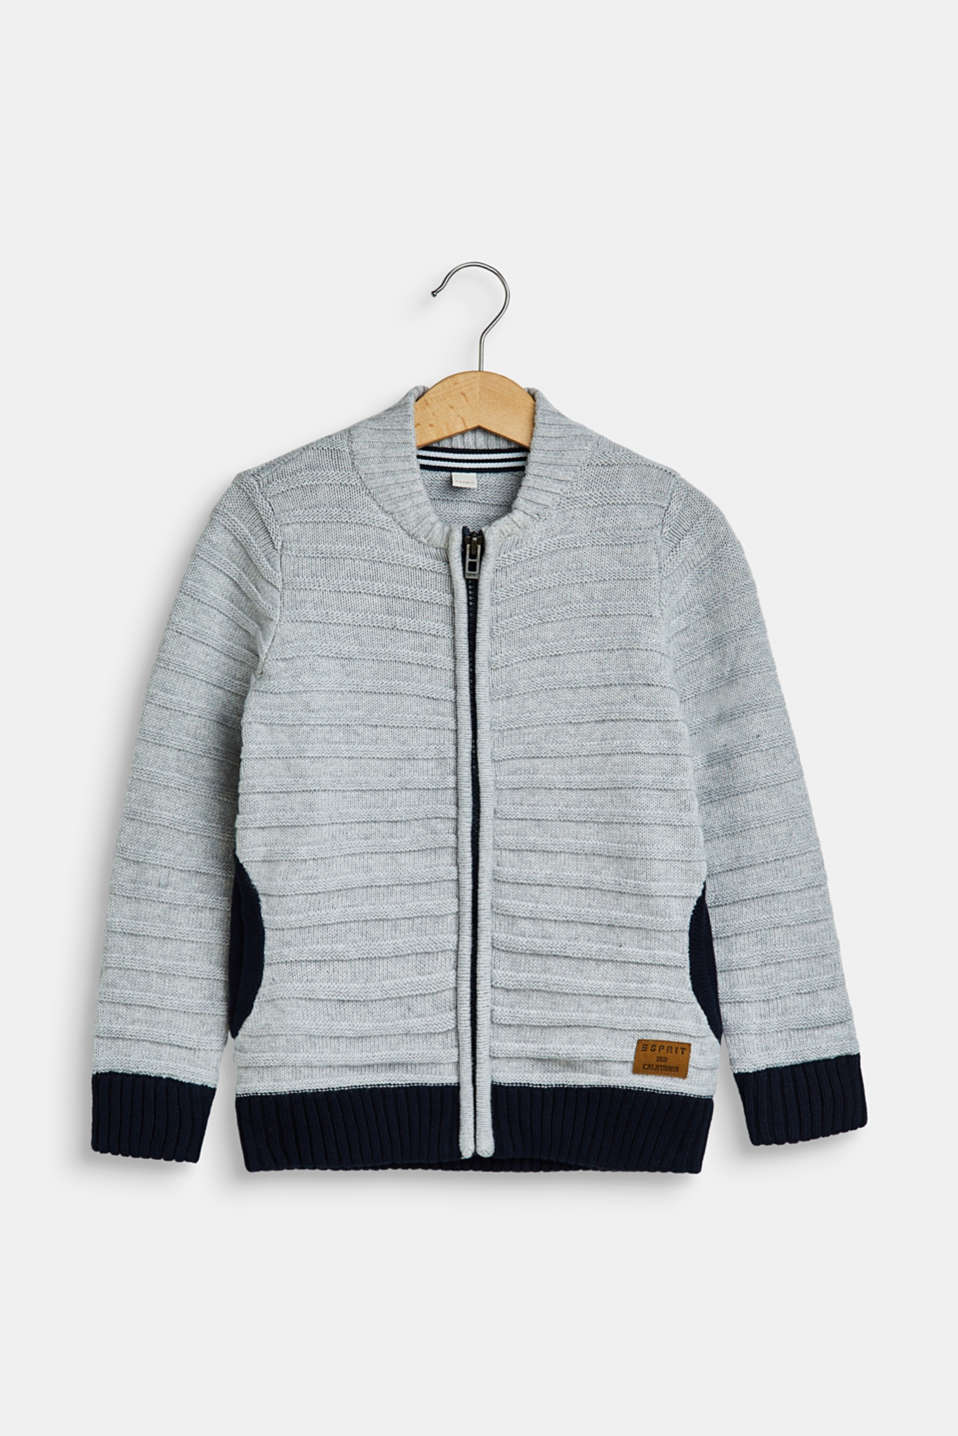 Esprit - Cardigan with textured stripes, 100% cotton